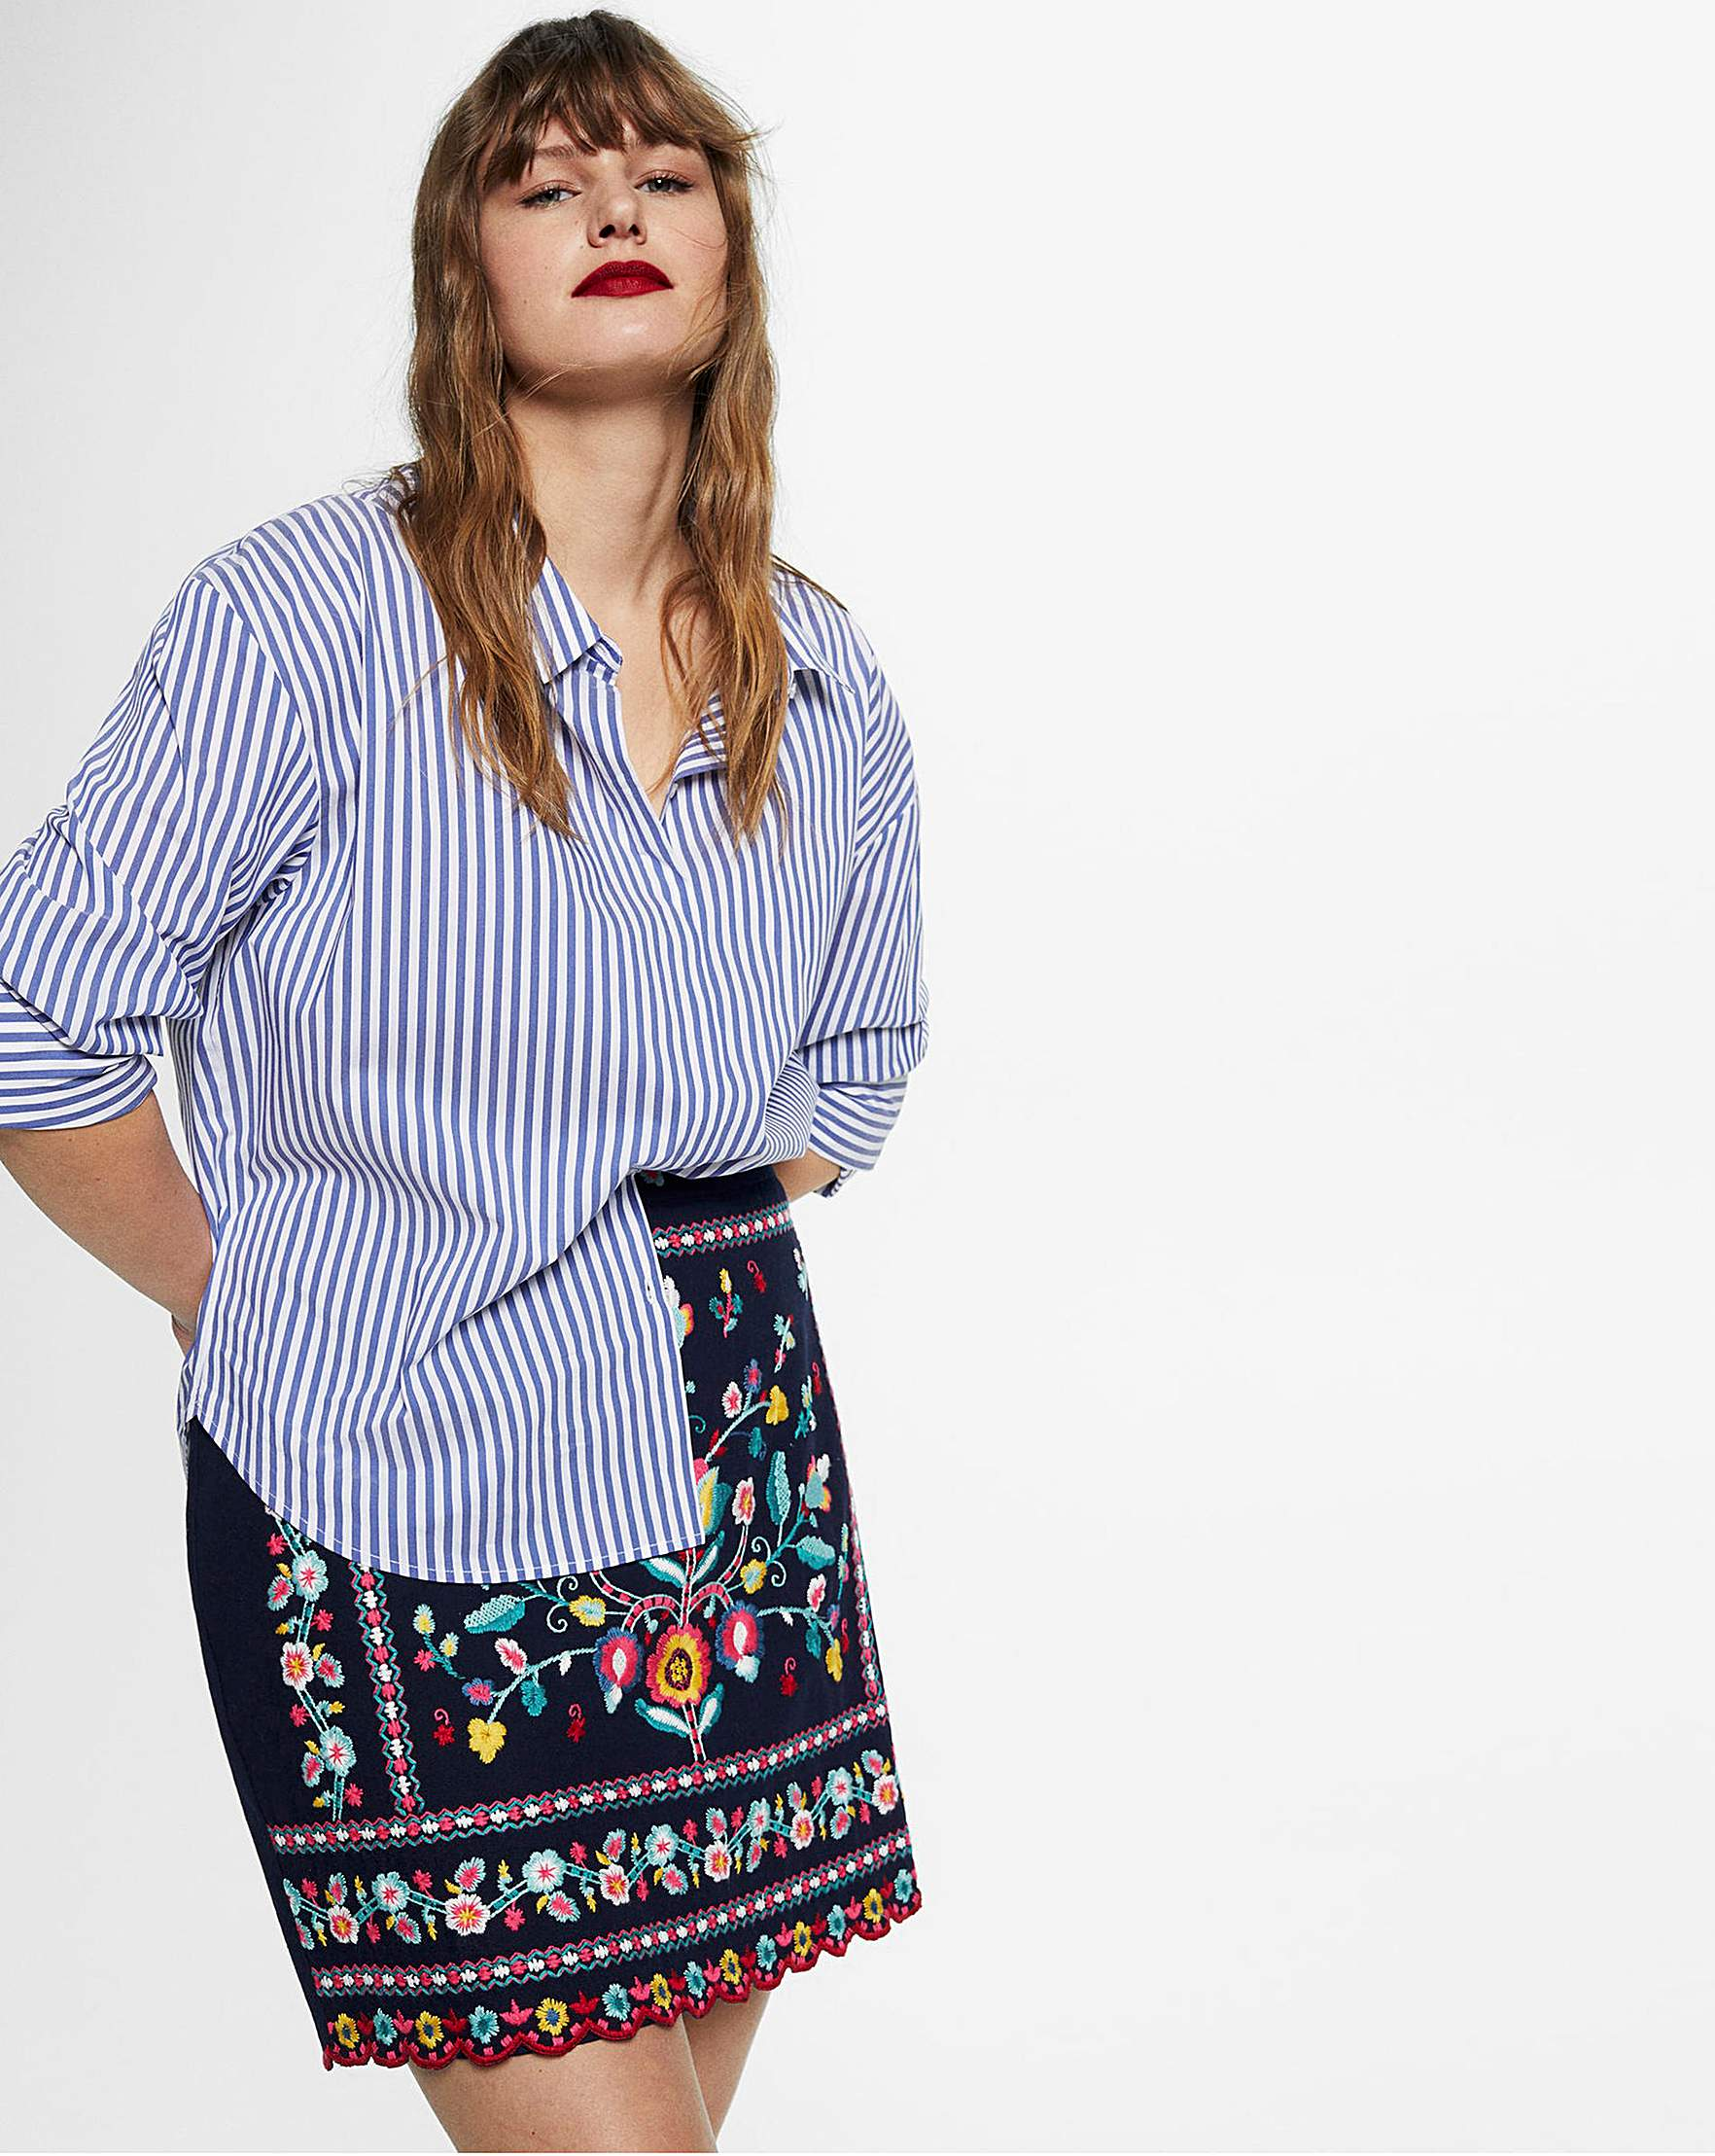 Violeta by Mango Has The Perfect Party Looks for Curvy Fashionistas